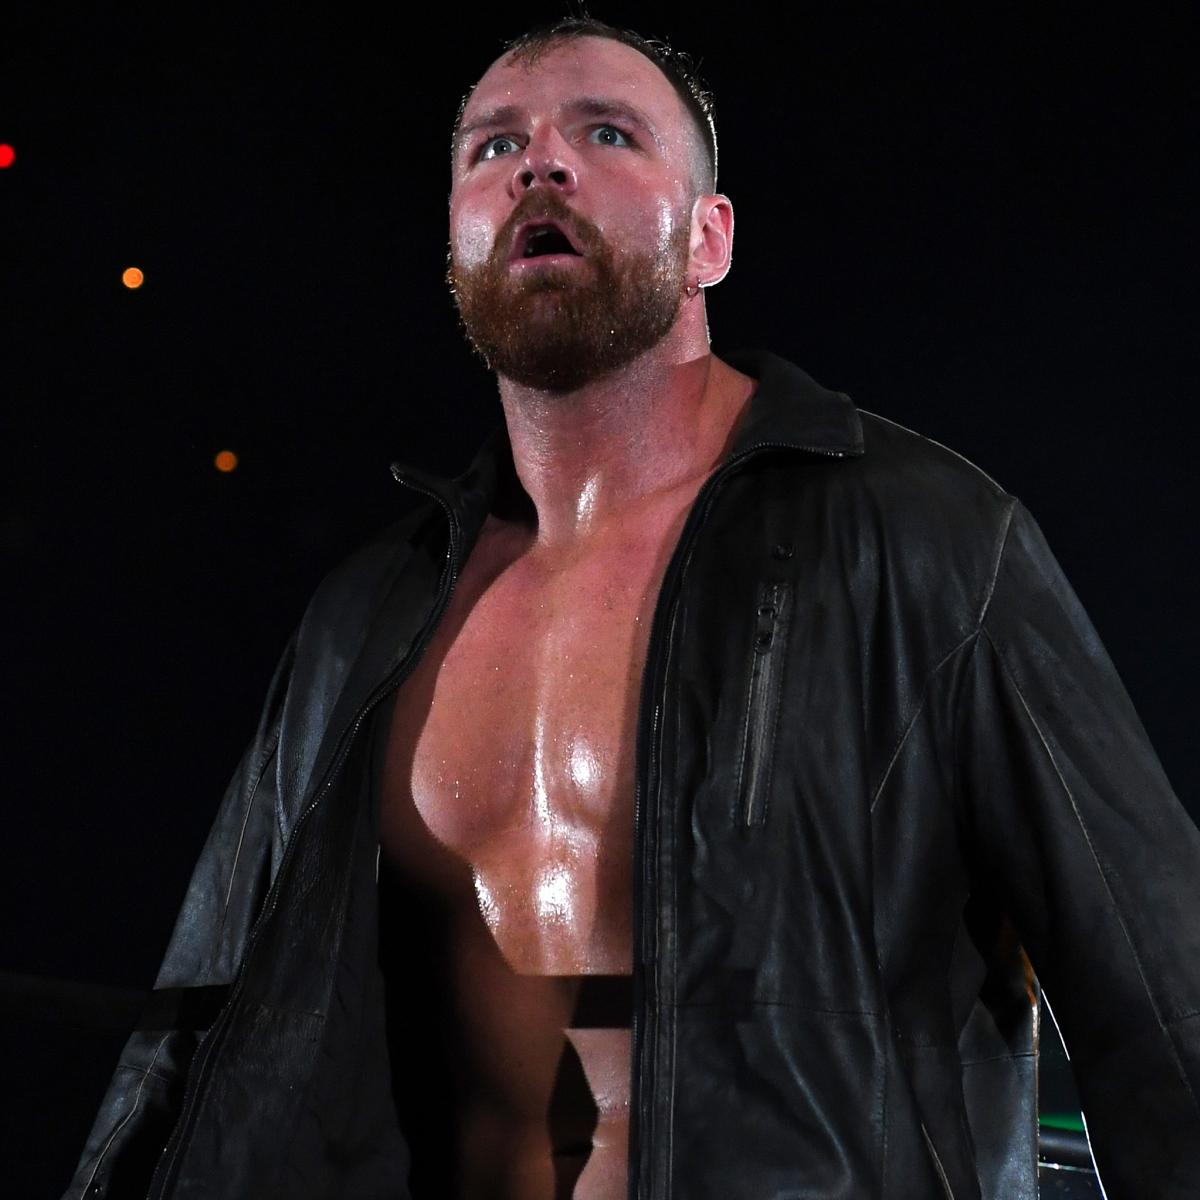 Jon Moxley Beats Joey Janela in AEW Debut Match at Fyter Fest